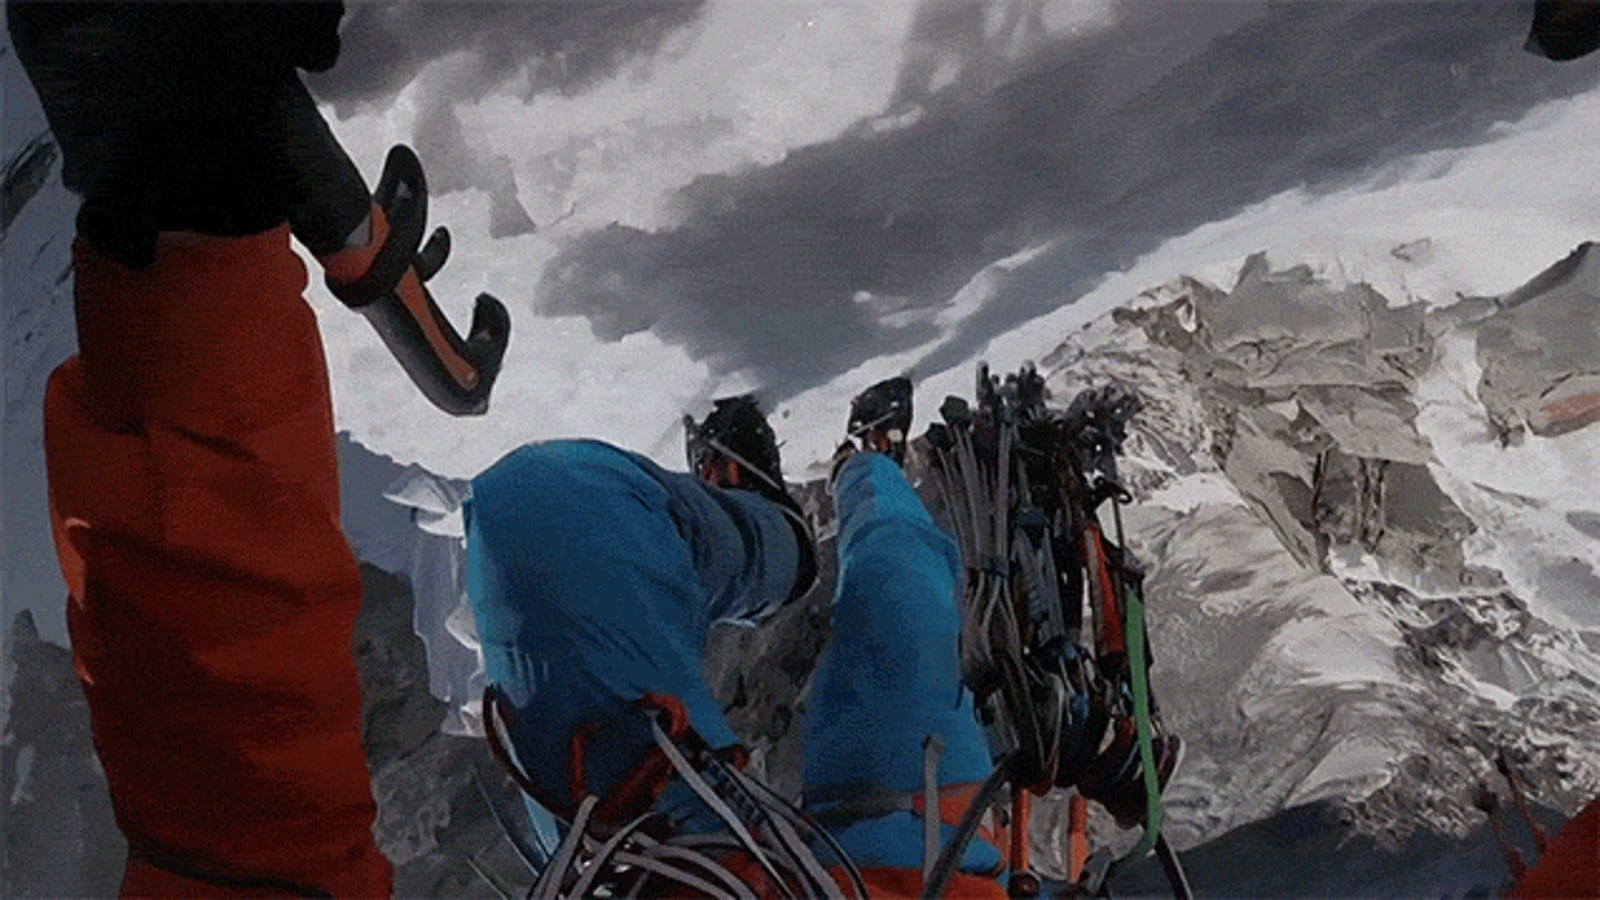 The First Person View of Climbing a Snowy 22,000-Foot Tall Mountain Is a Little Bit Terrifying